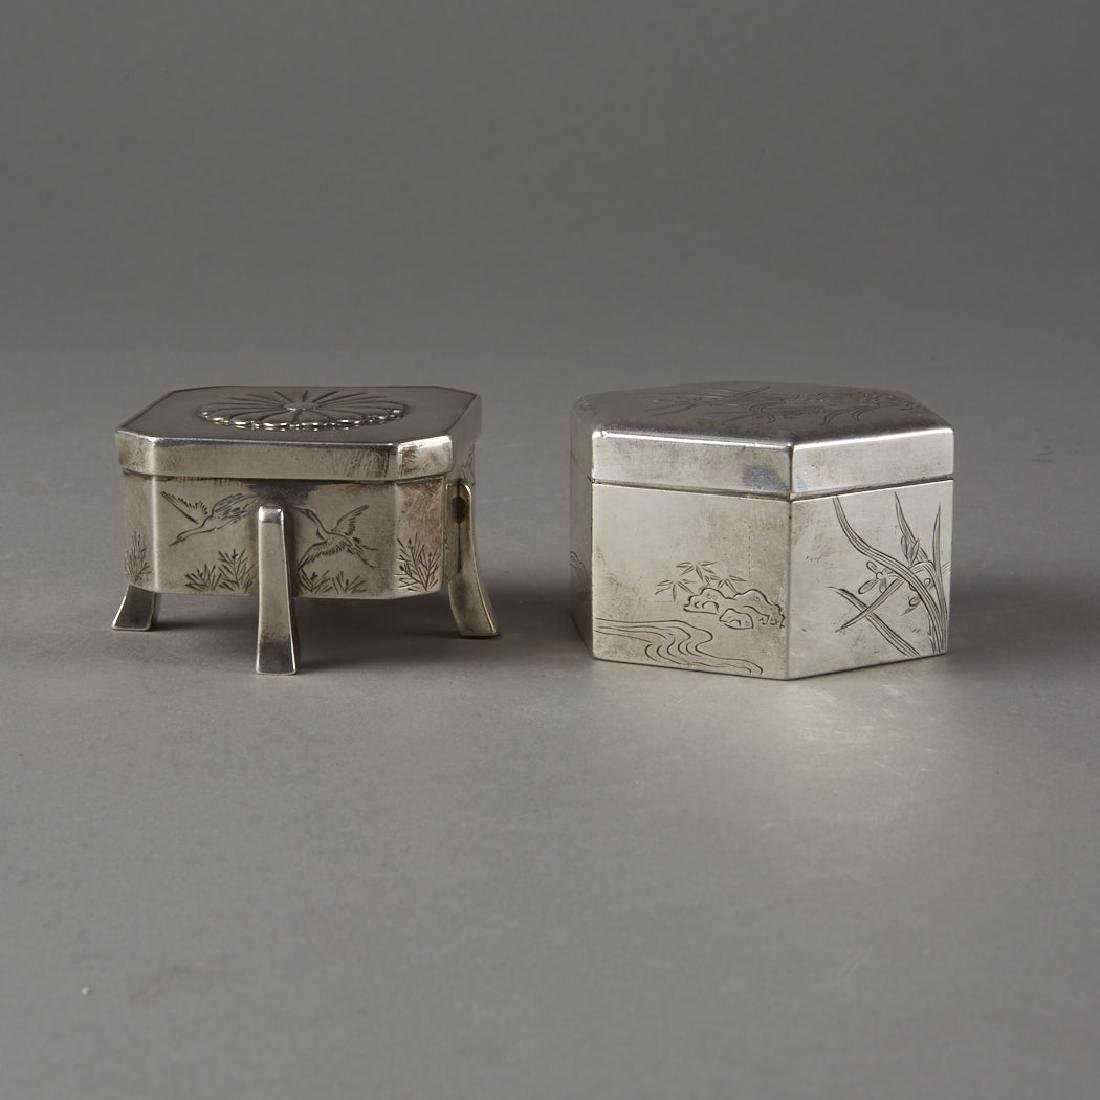 Japanese 20th C. Silver Boxes Decoration - 4